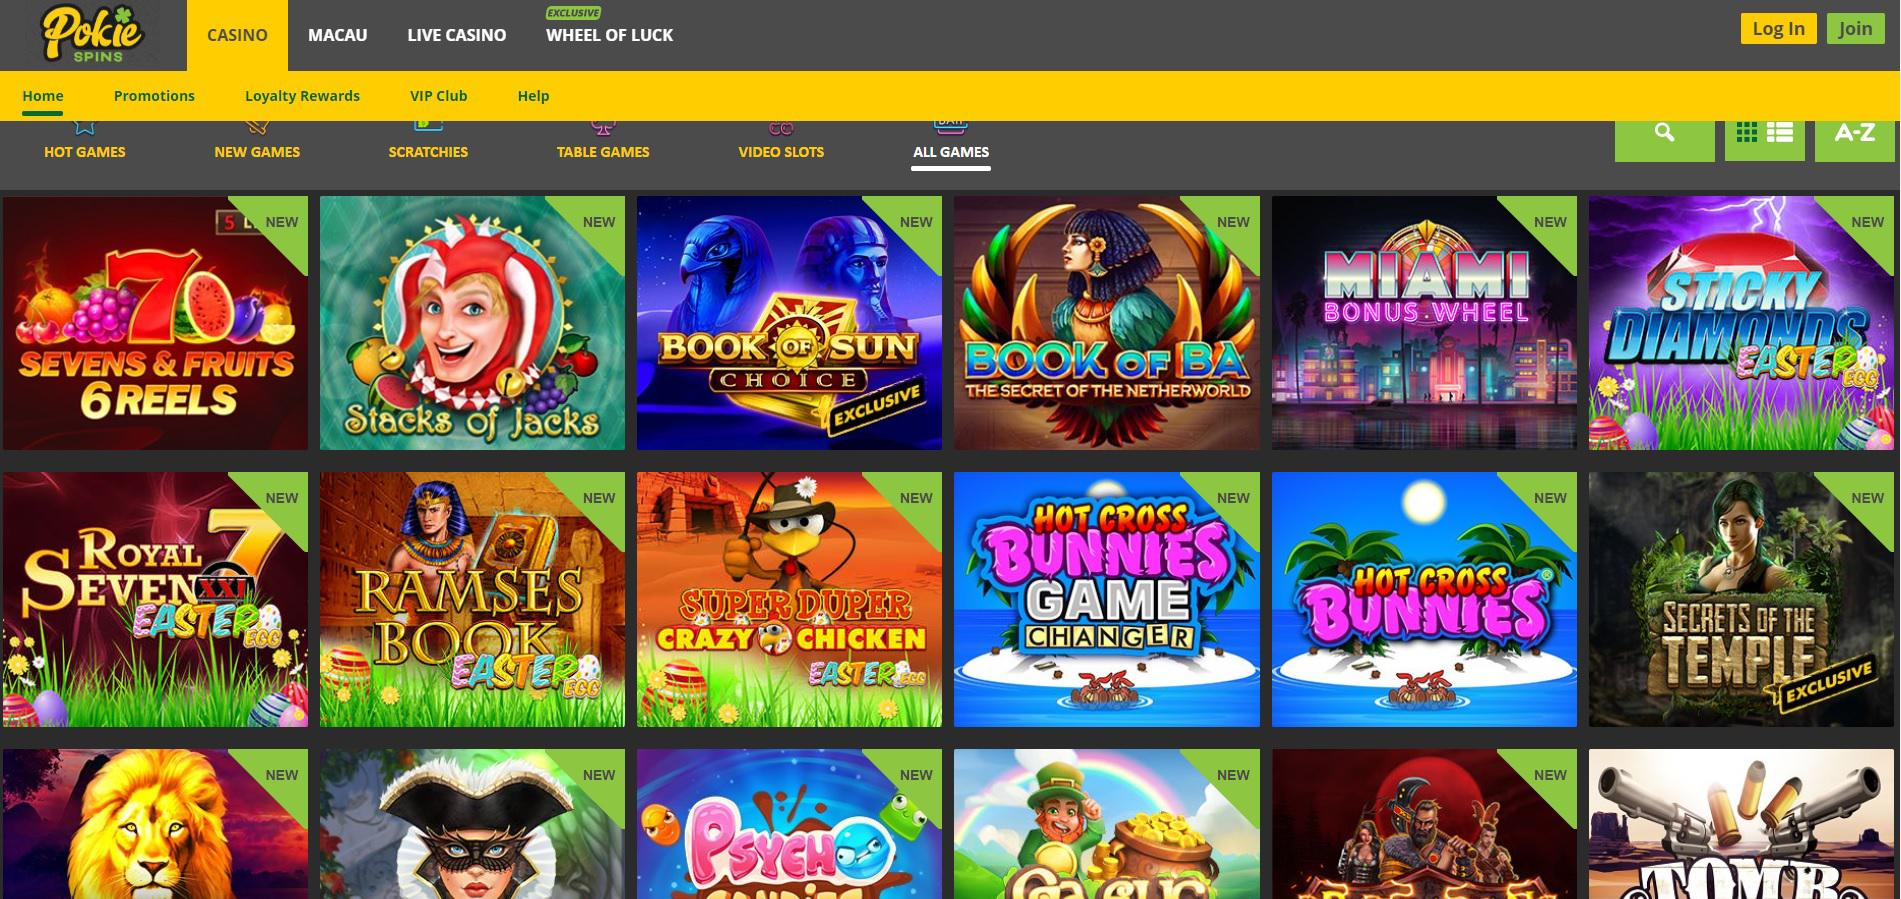 Pokie Place Casino Review For Canada